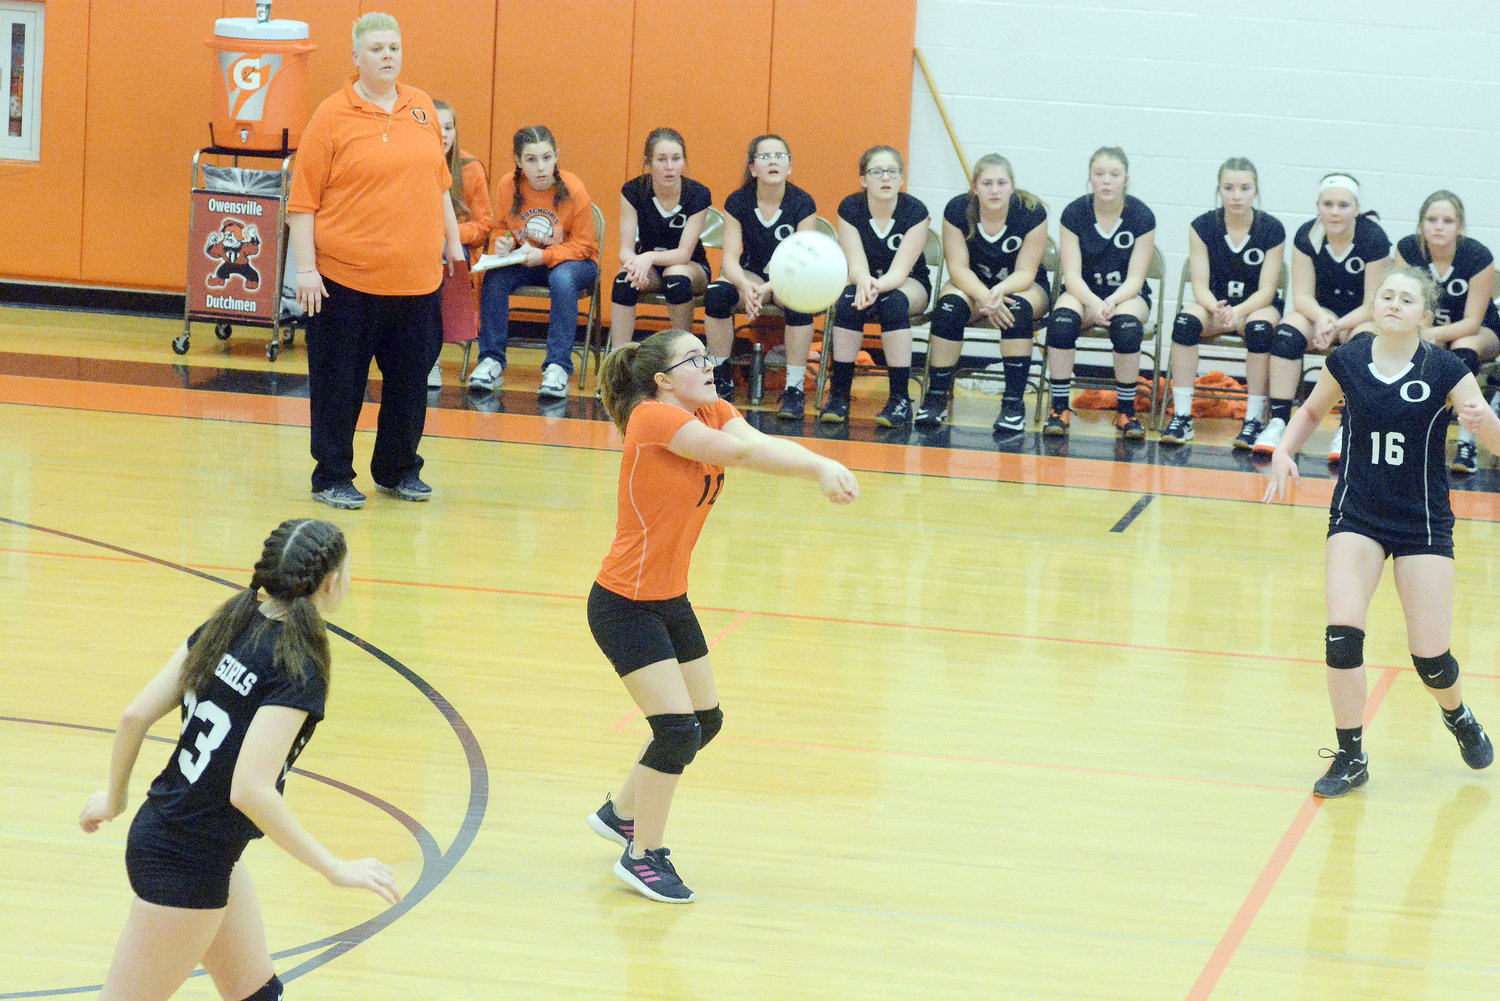 Kendra Lay (above, center) positions herself to bump the volleyball during Owensville's three-set victory last Thursday night against Bland's Lady Bears in Highway 28 middle school volleyball action at Owensville Elementary School.